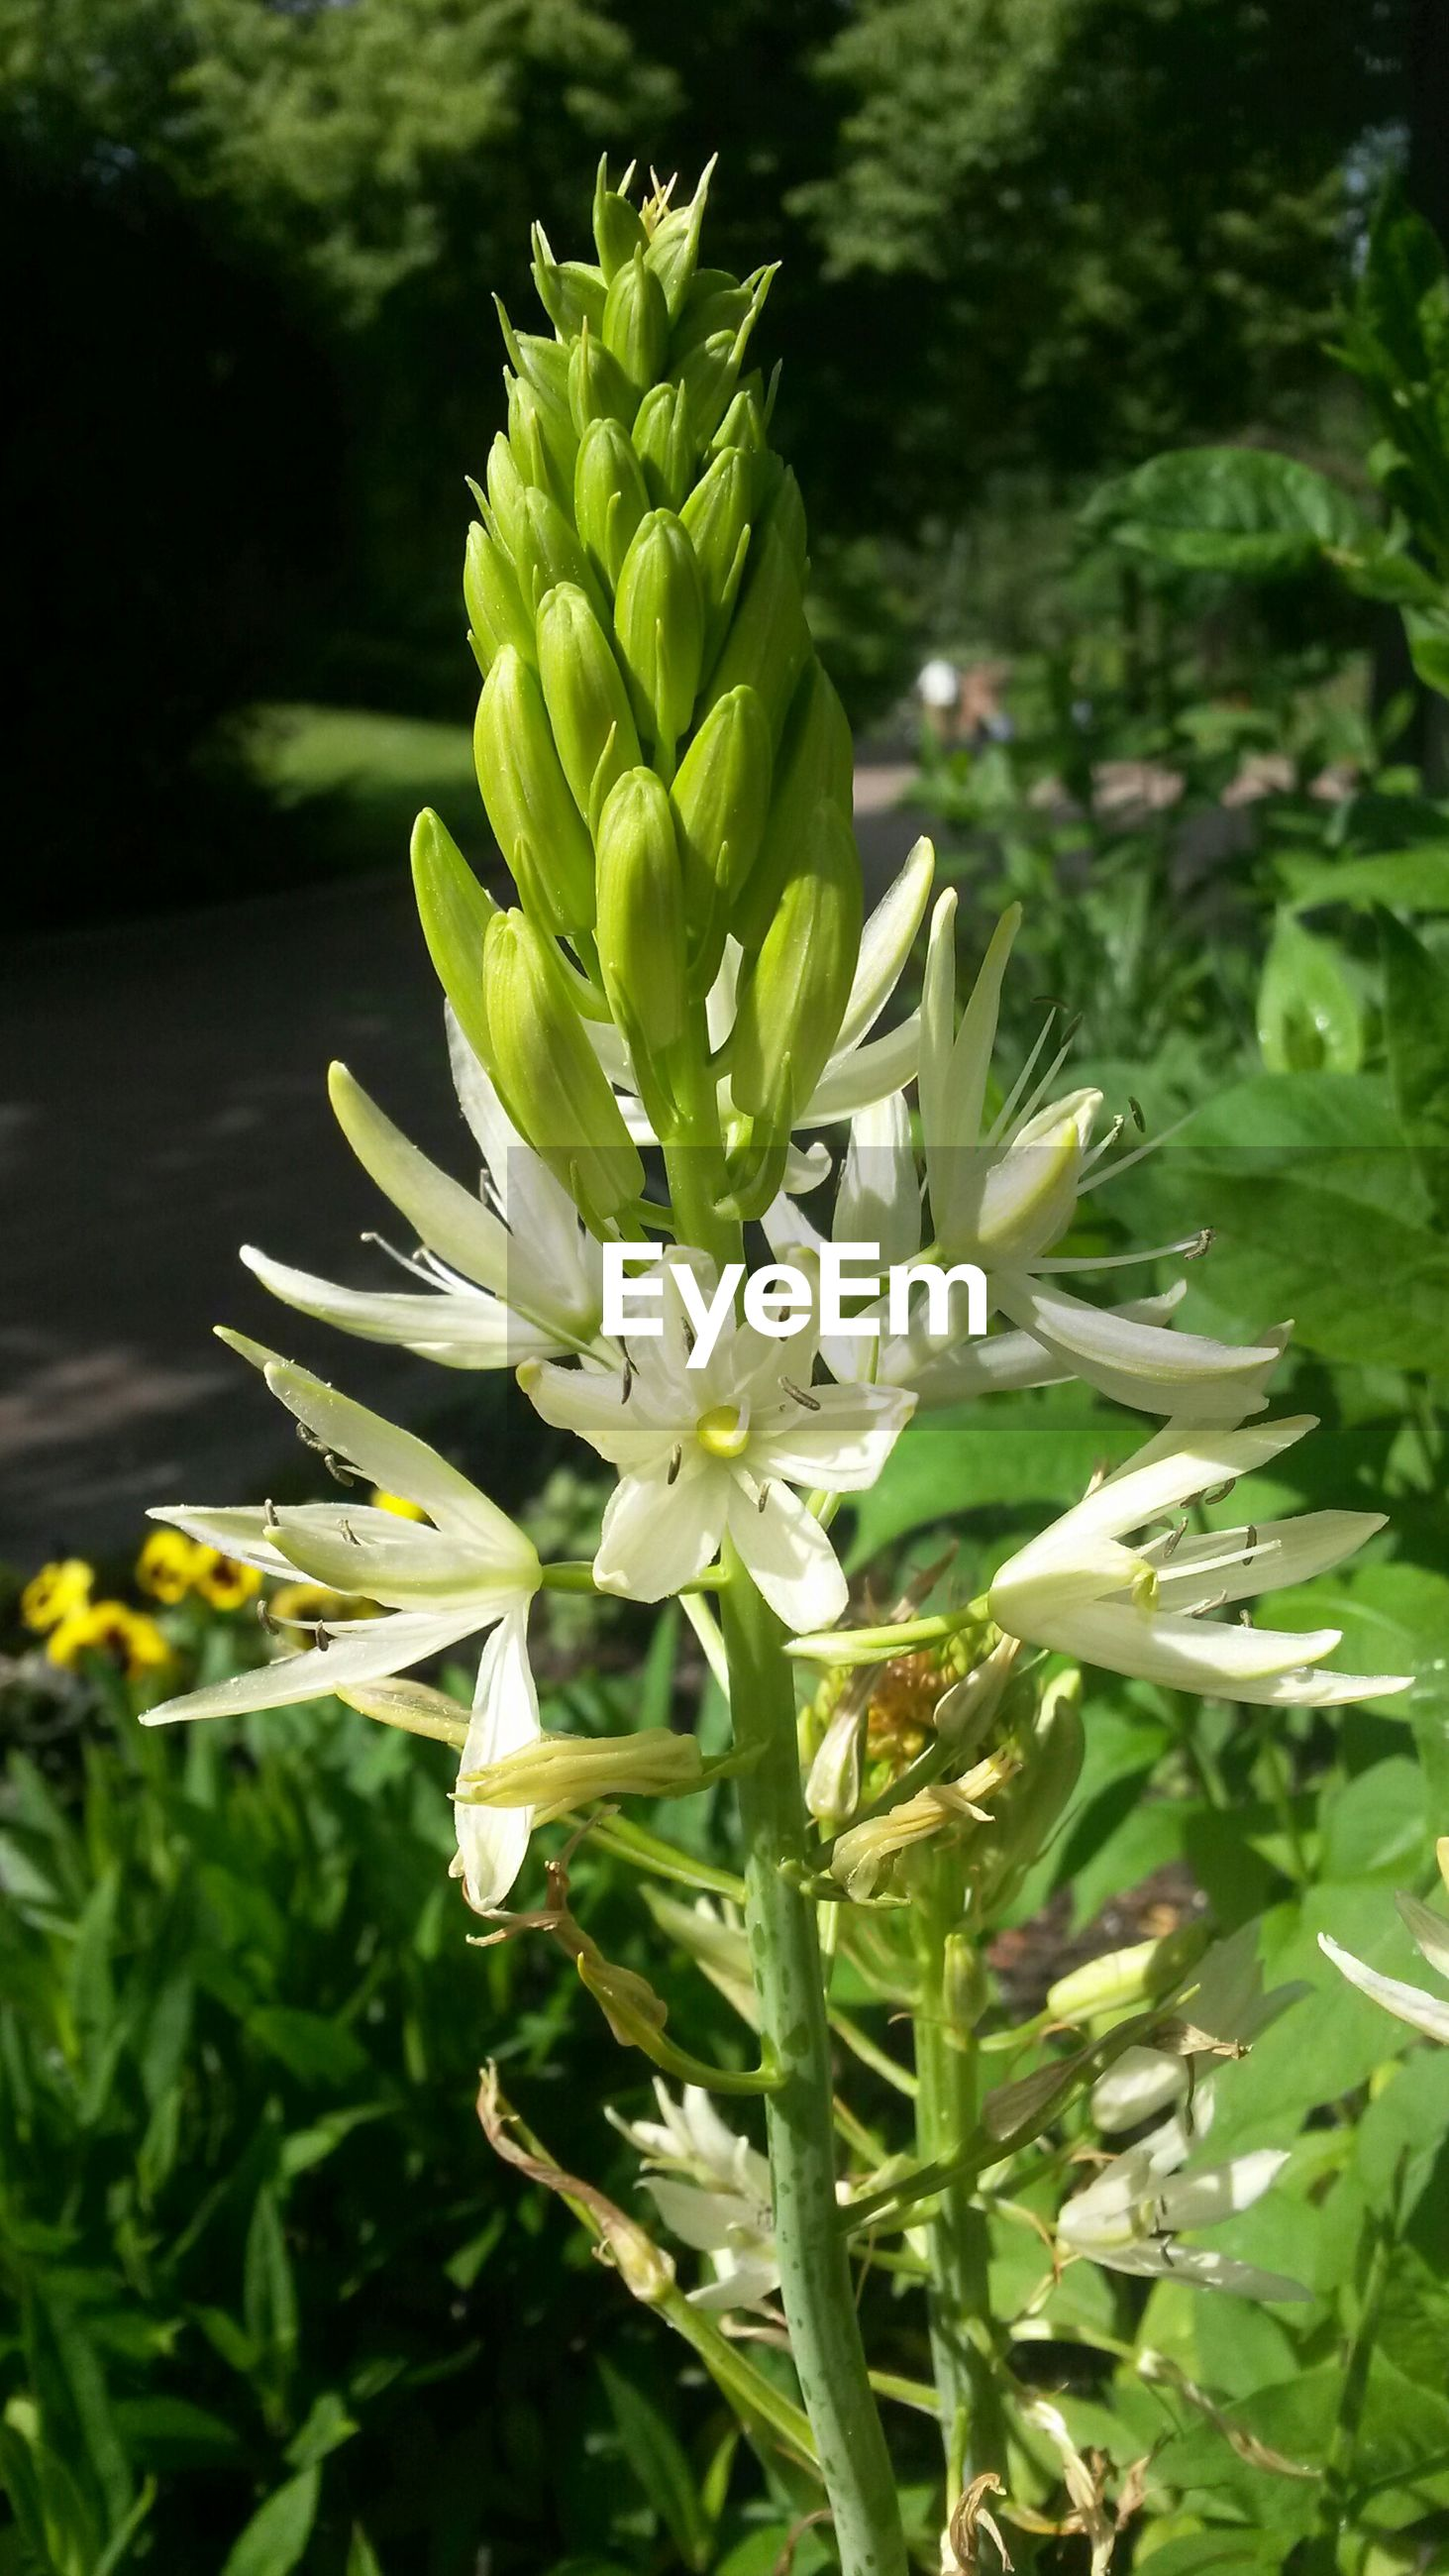 flower, growth, freshness, plant, fragility, green color, leaf, beauty in nature, petal, nature, flower head, close-up, blooming, focus on foreground, white color, in bloom, stem, growing, botany, bud